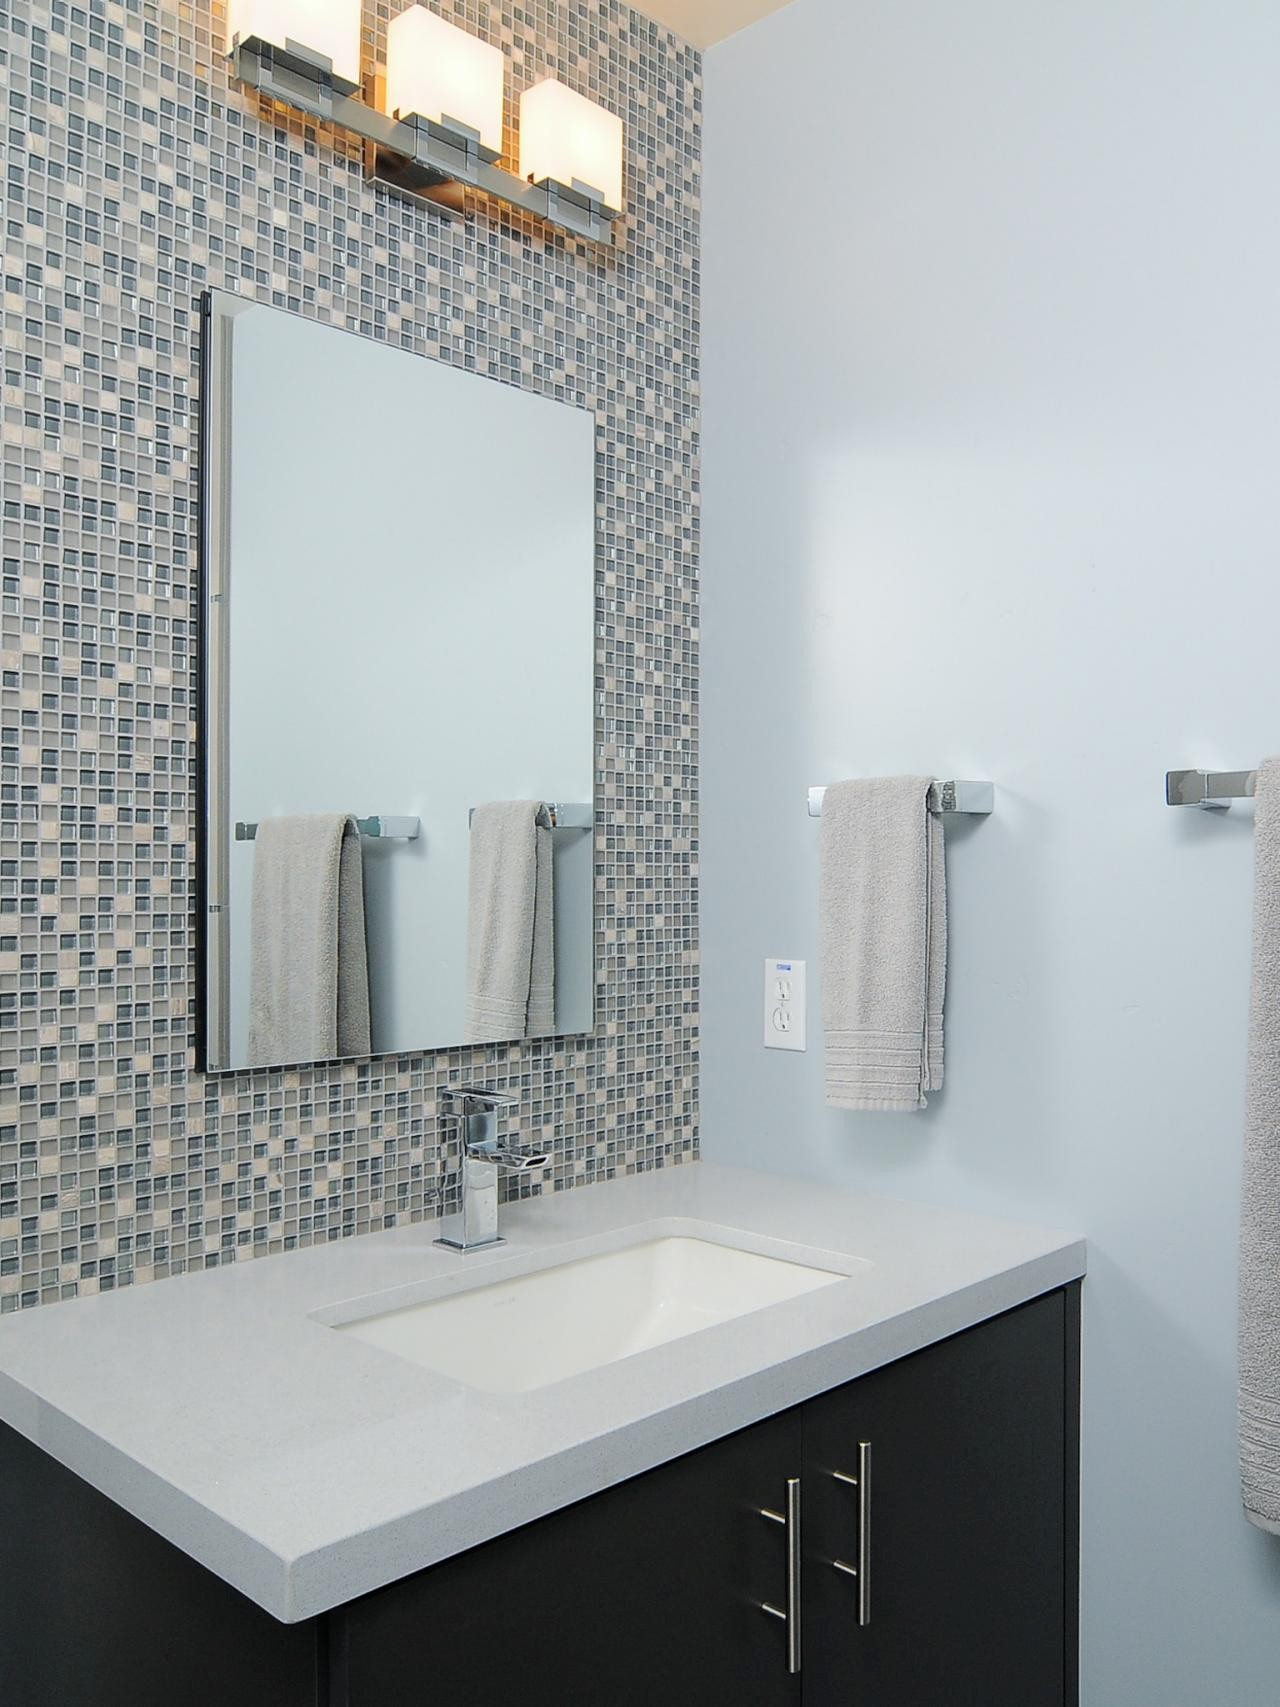 Modern Accent Tile Bathroom Ideas - Bathroom Design Ideas Gallery ...